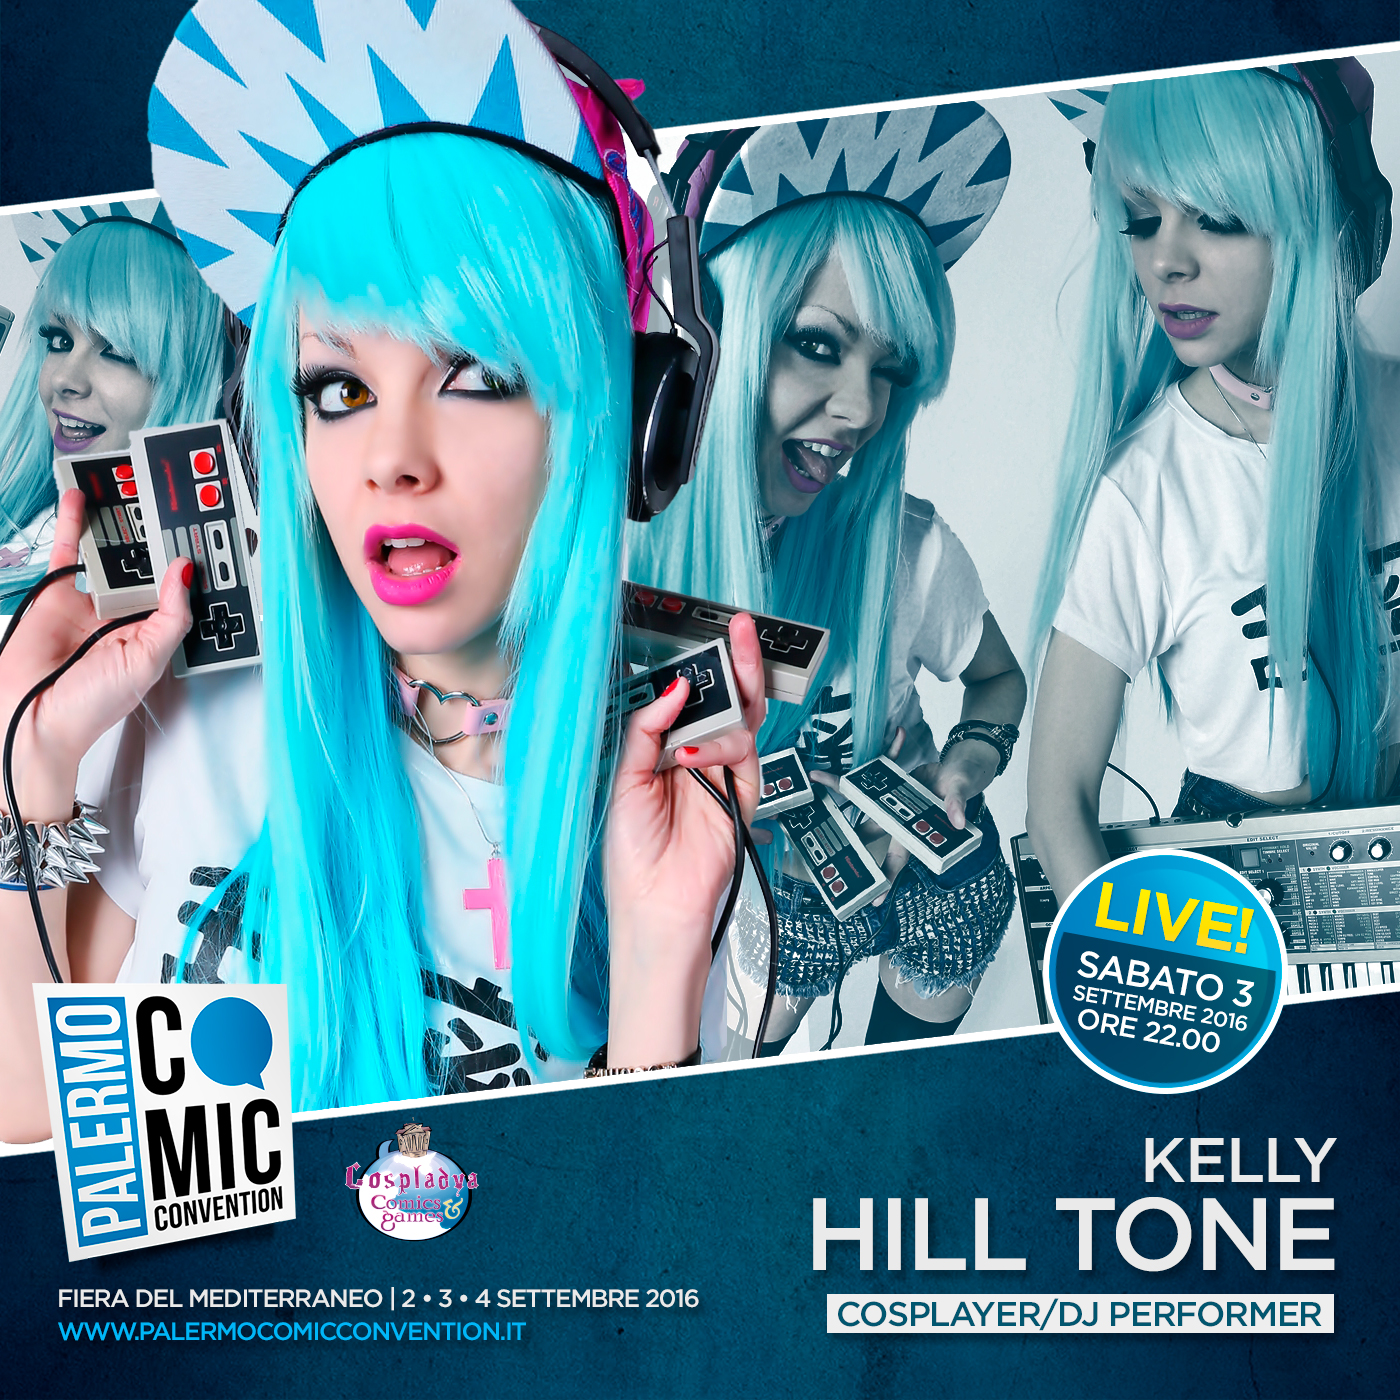 Kelly Hill Tone